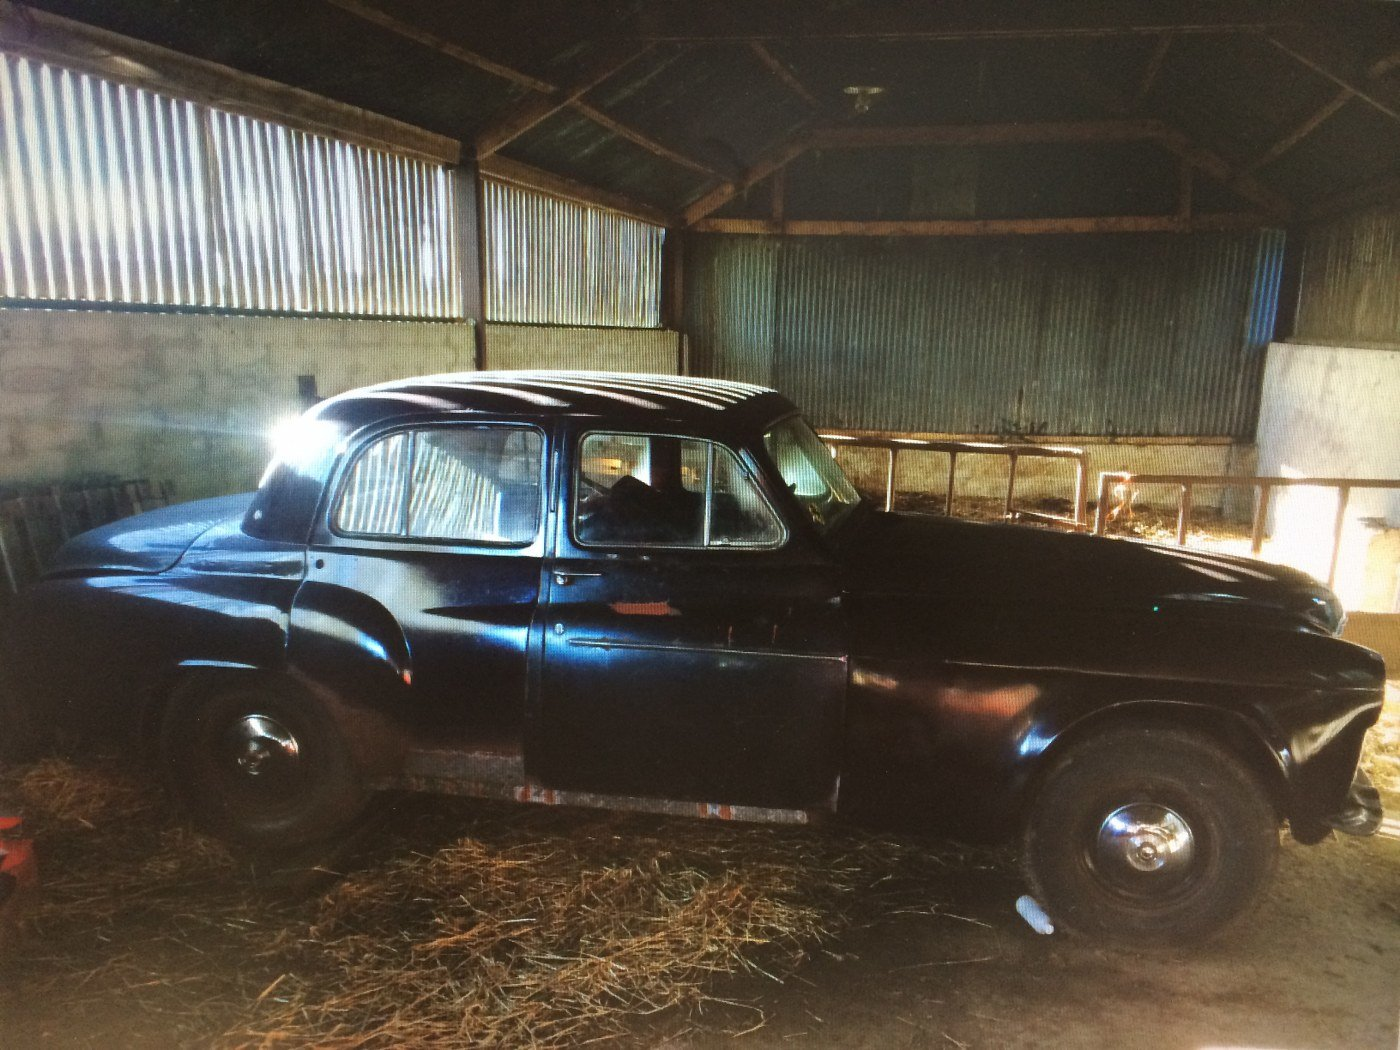 1953 Humber Super Snipe Mk4 Early Car For Sale (picture 3 of 3)